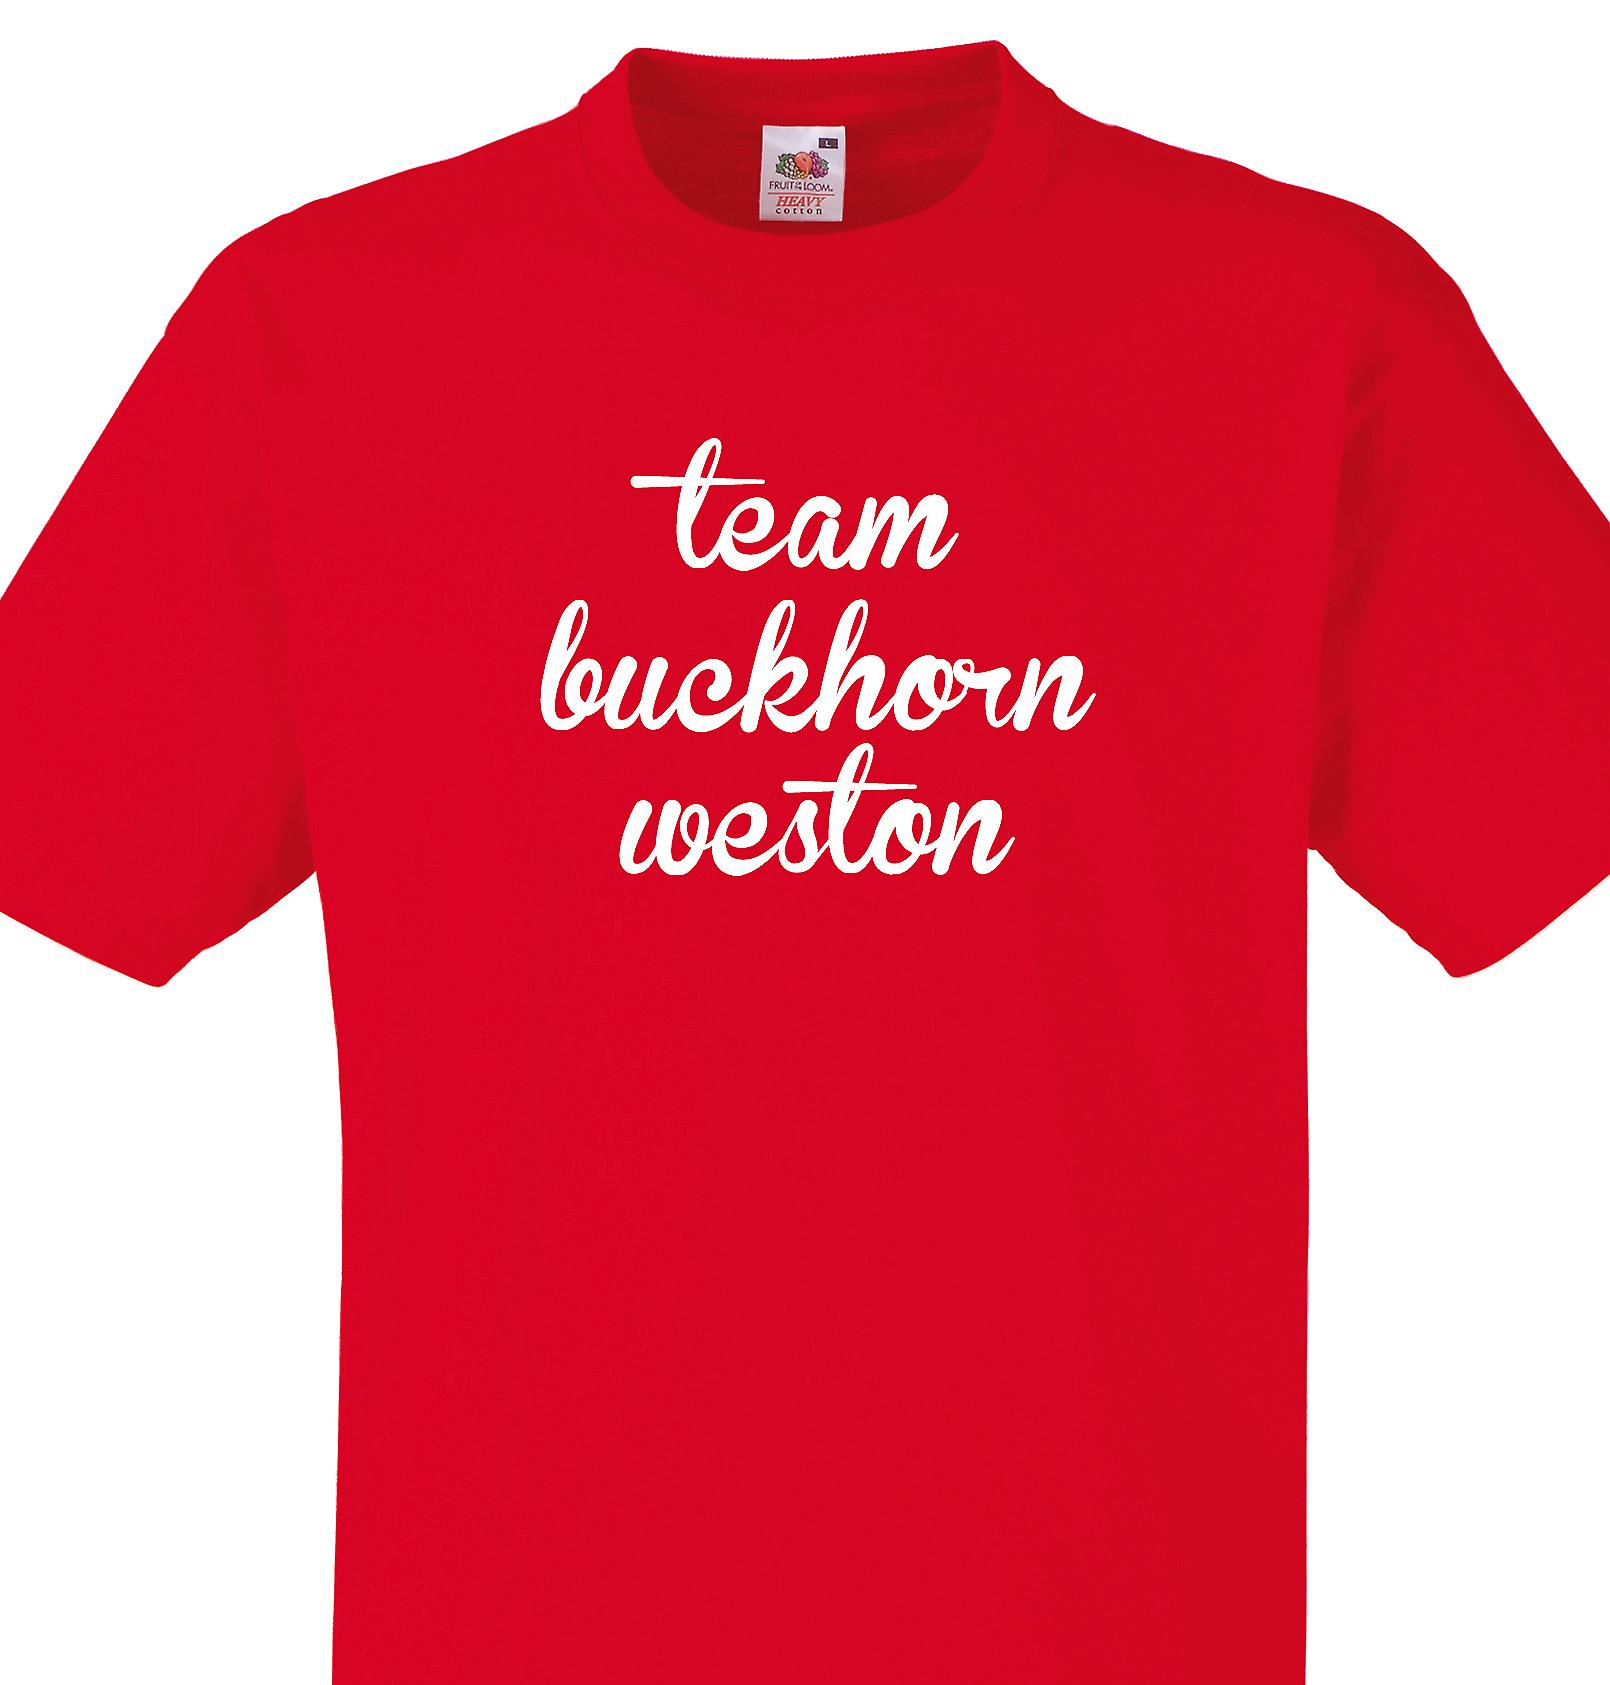 Team Buckhorn weston Red T shirt